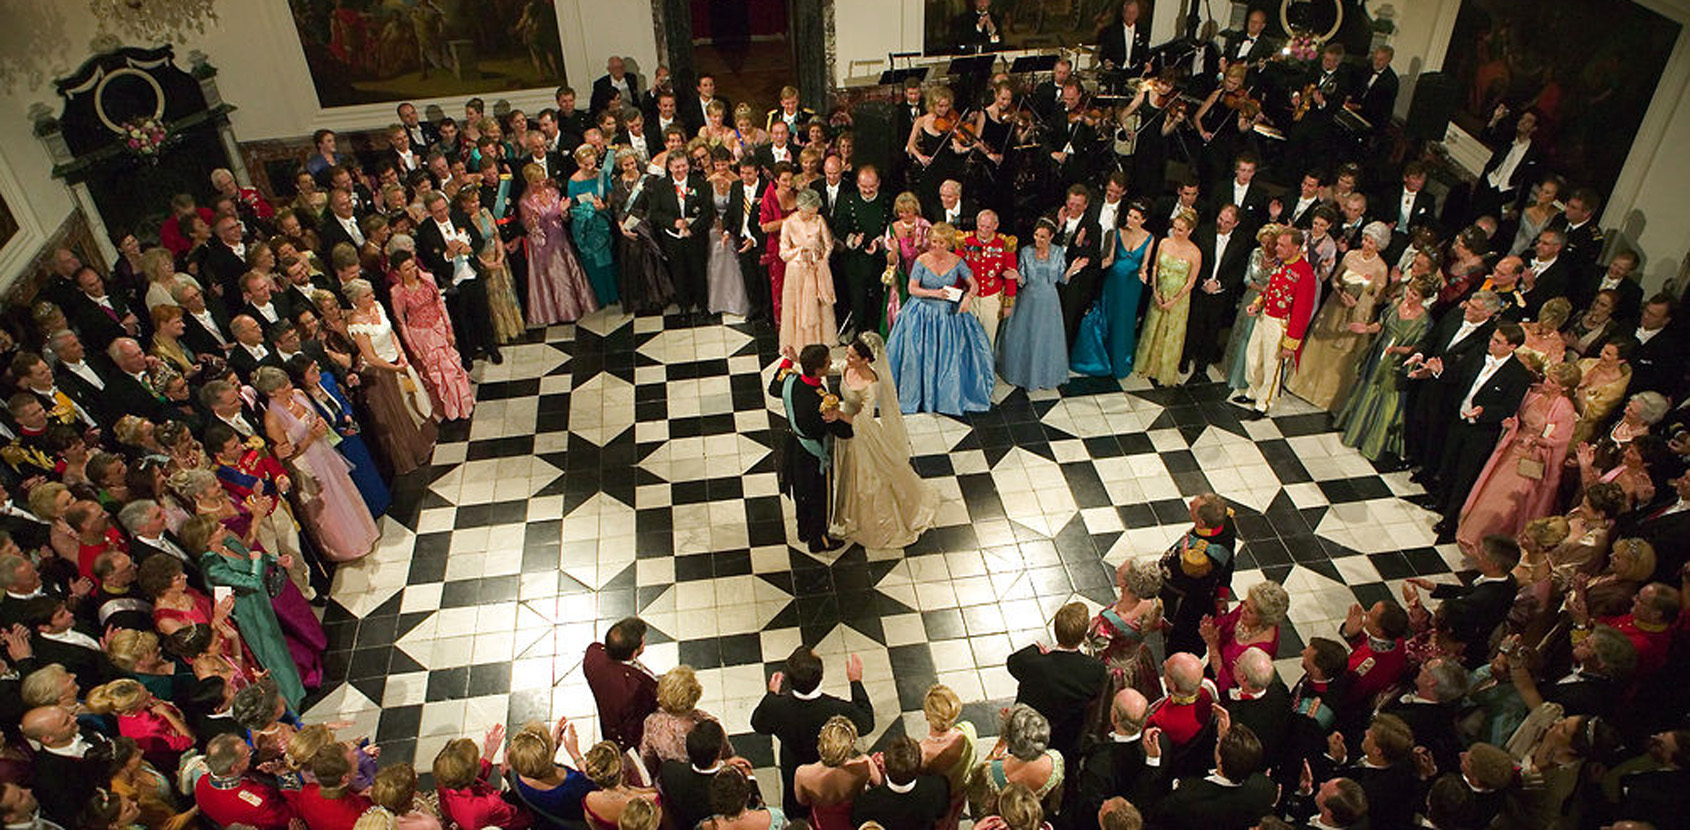 The Royal Couple danced the bridal waltz in the Dome Hall of the palace. Photo: Scanpix / Jørgen Jessen